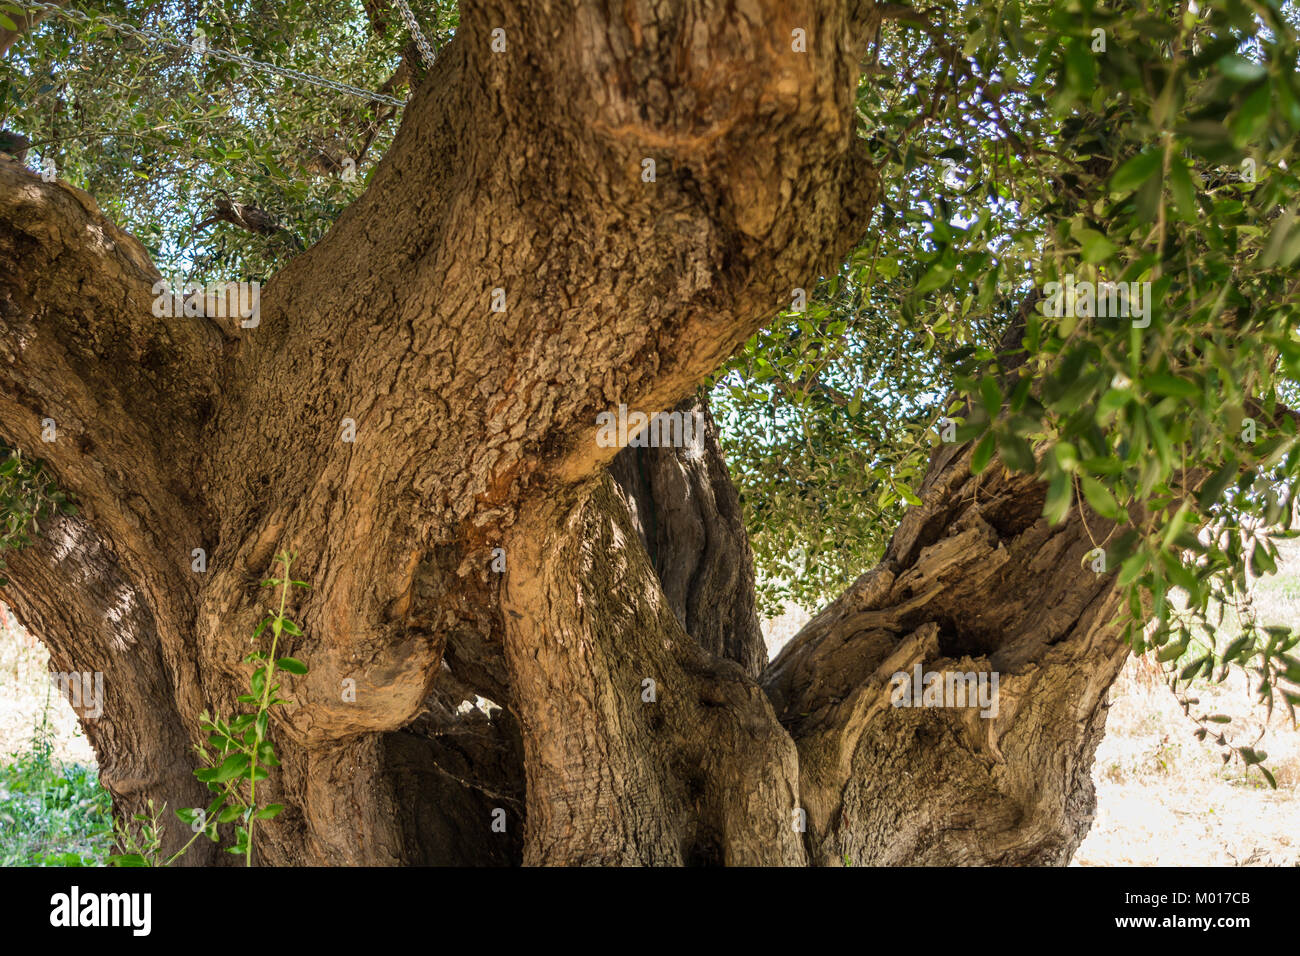 trunk of a large secular olive tree in Italy, Marche. - Stock Image